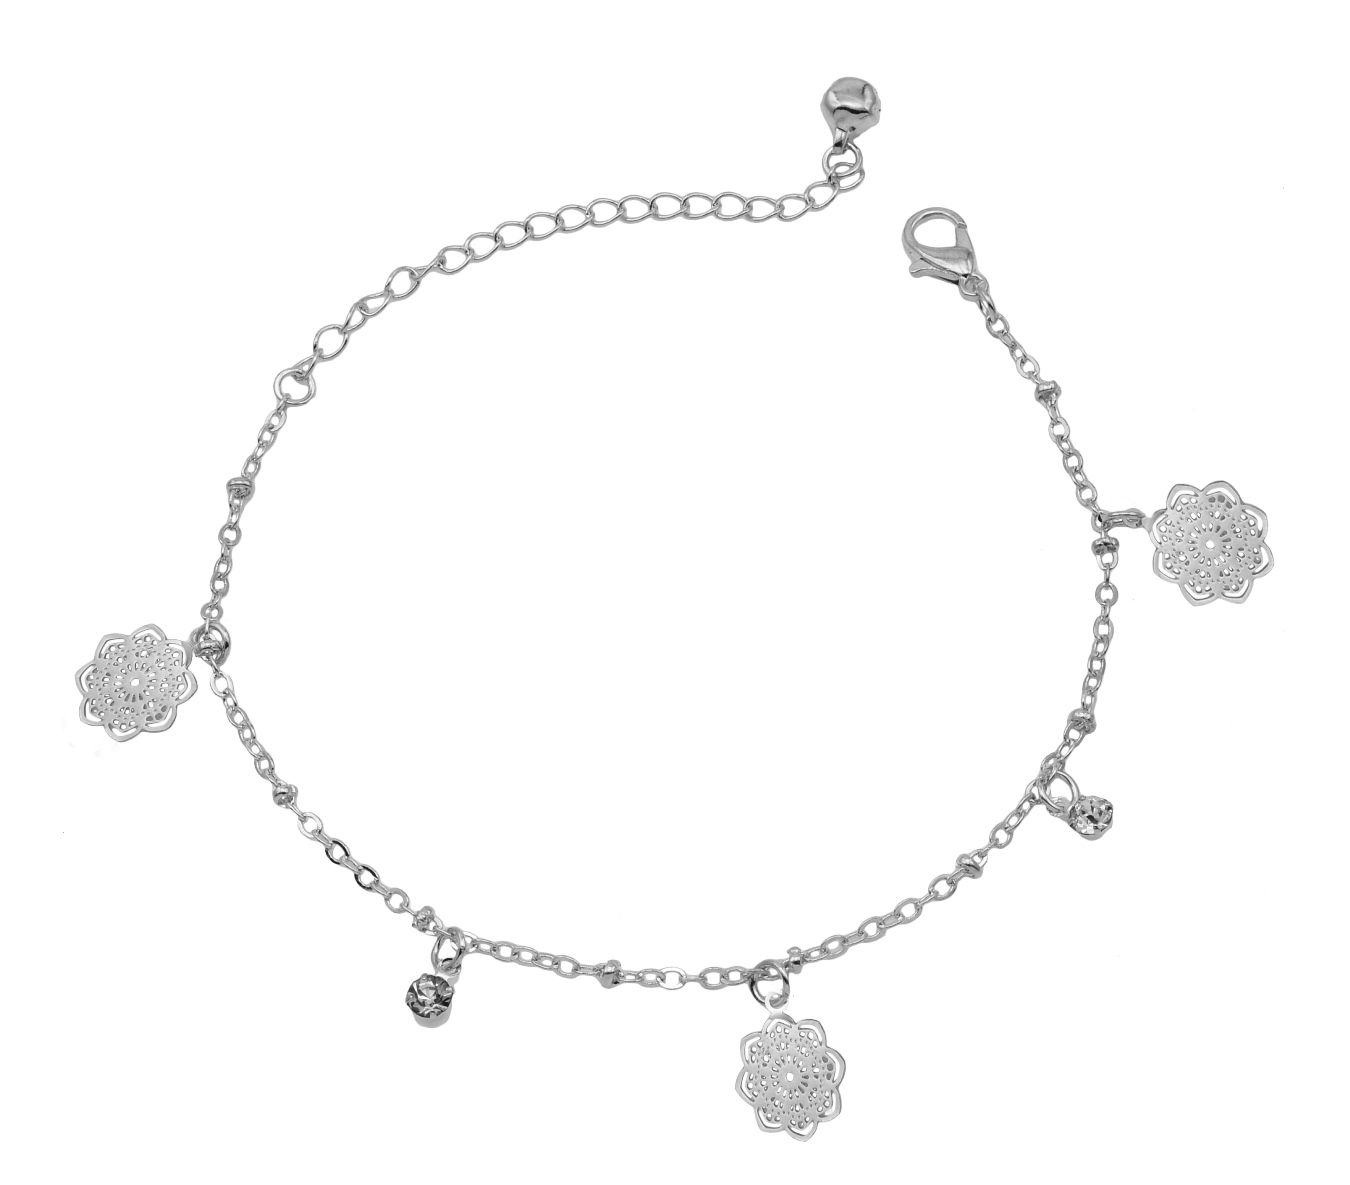 High Trendz Trendy Light Weight Silver Plated Anklet With Beautiful Hanging Flower For Women And Girls